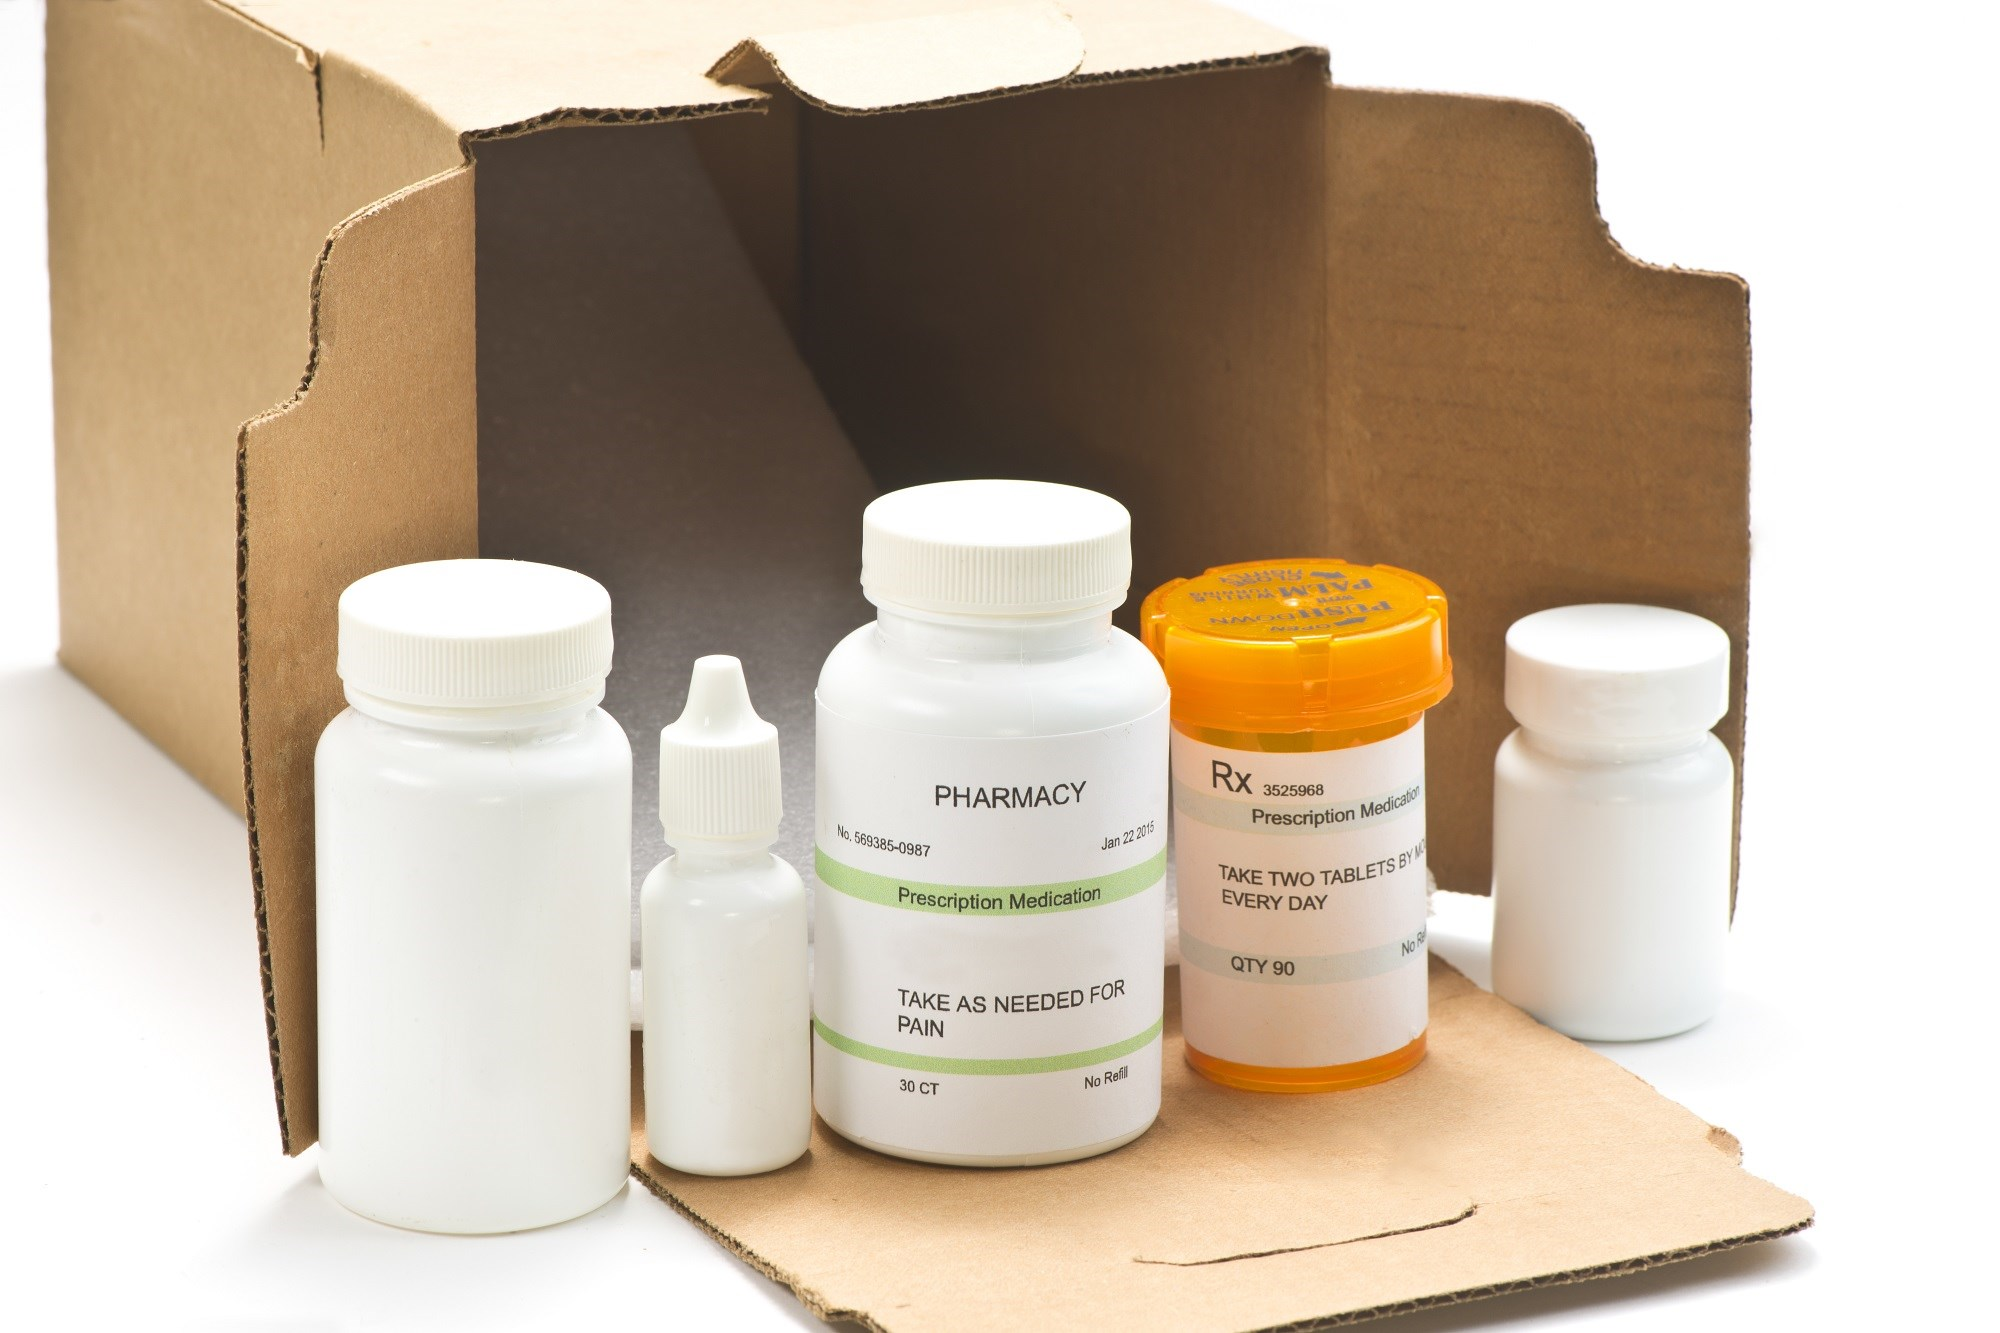 Eligible prescriptions can be delivered to the home as early as next-day for a flat fee of $4.99